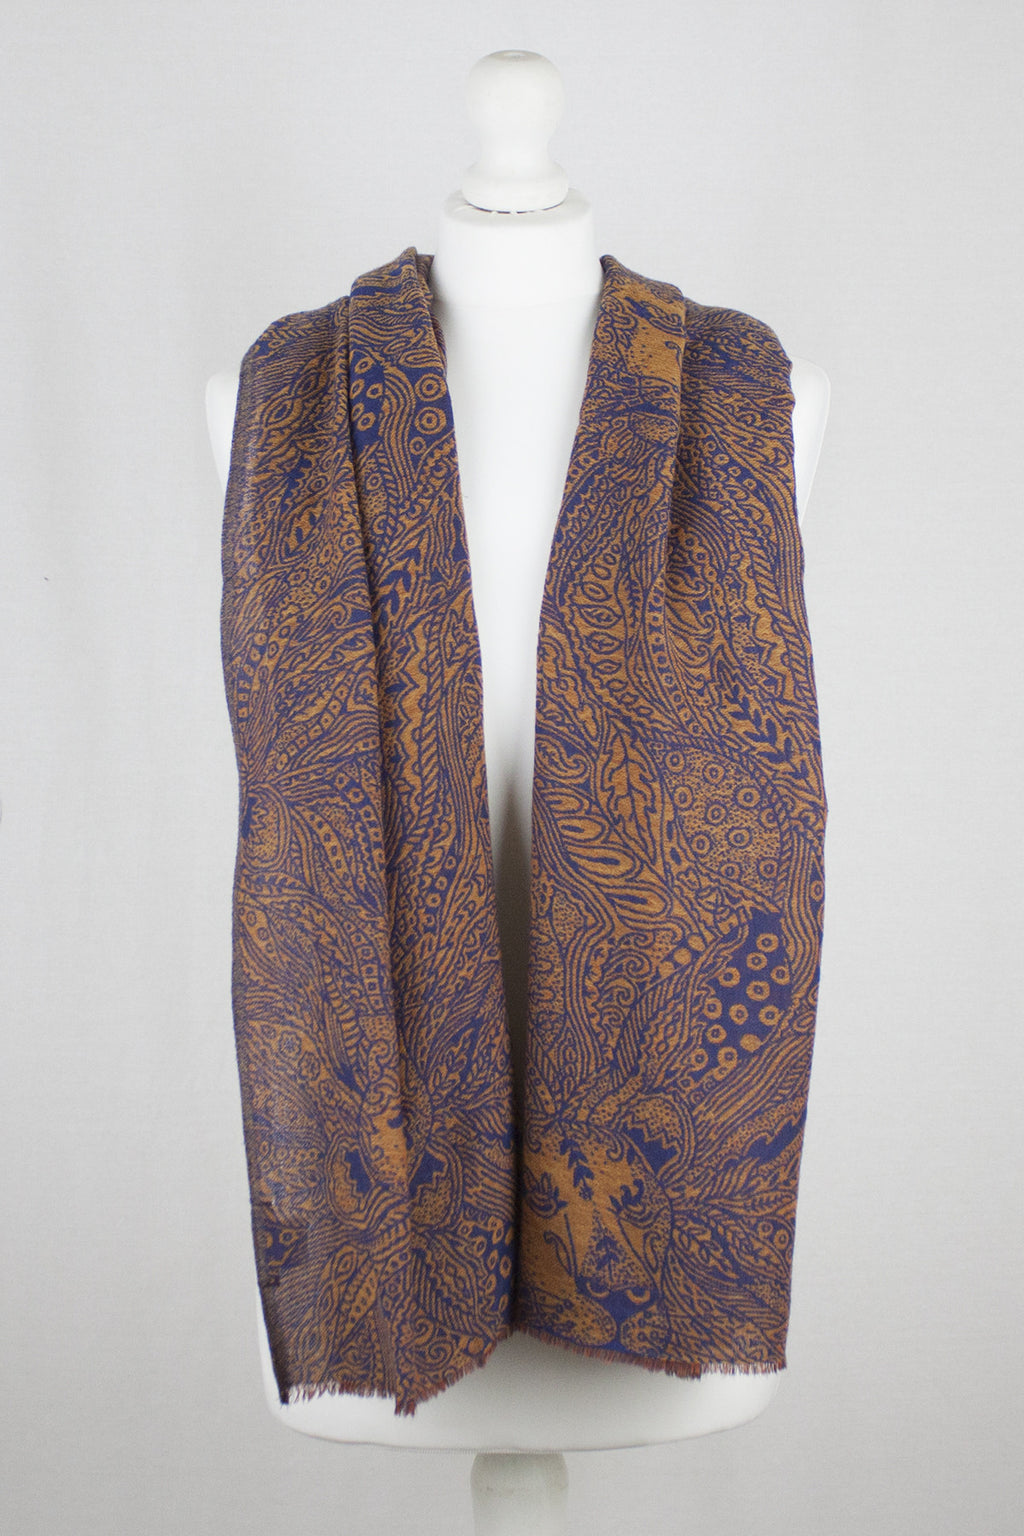 Dark Night Cheetah Jacquard Merino Wool Scarf - Navy Orange